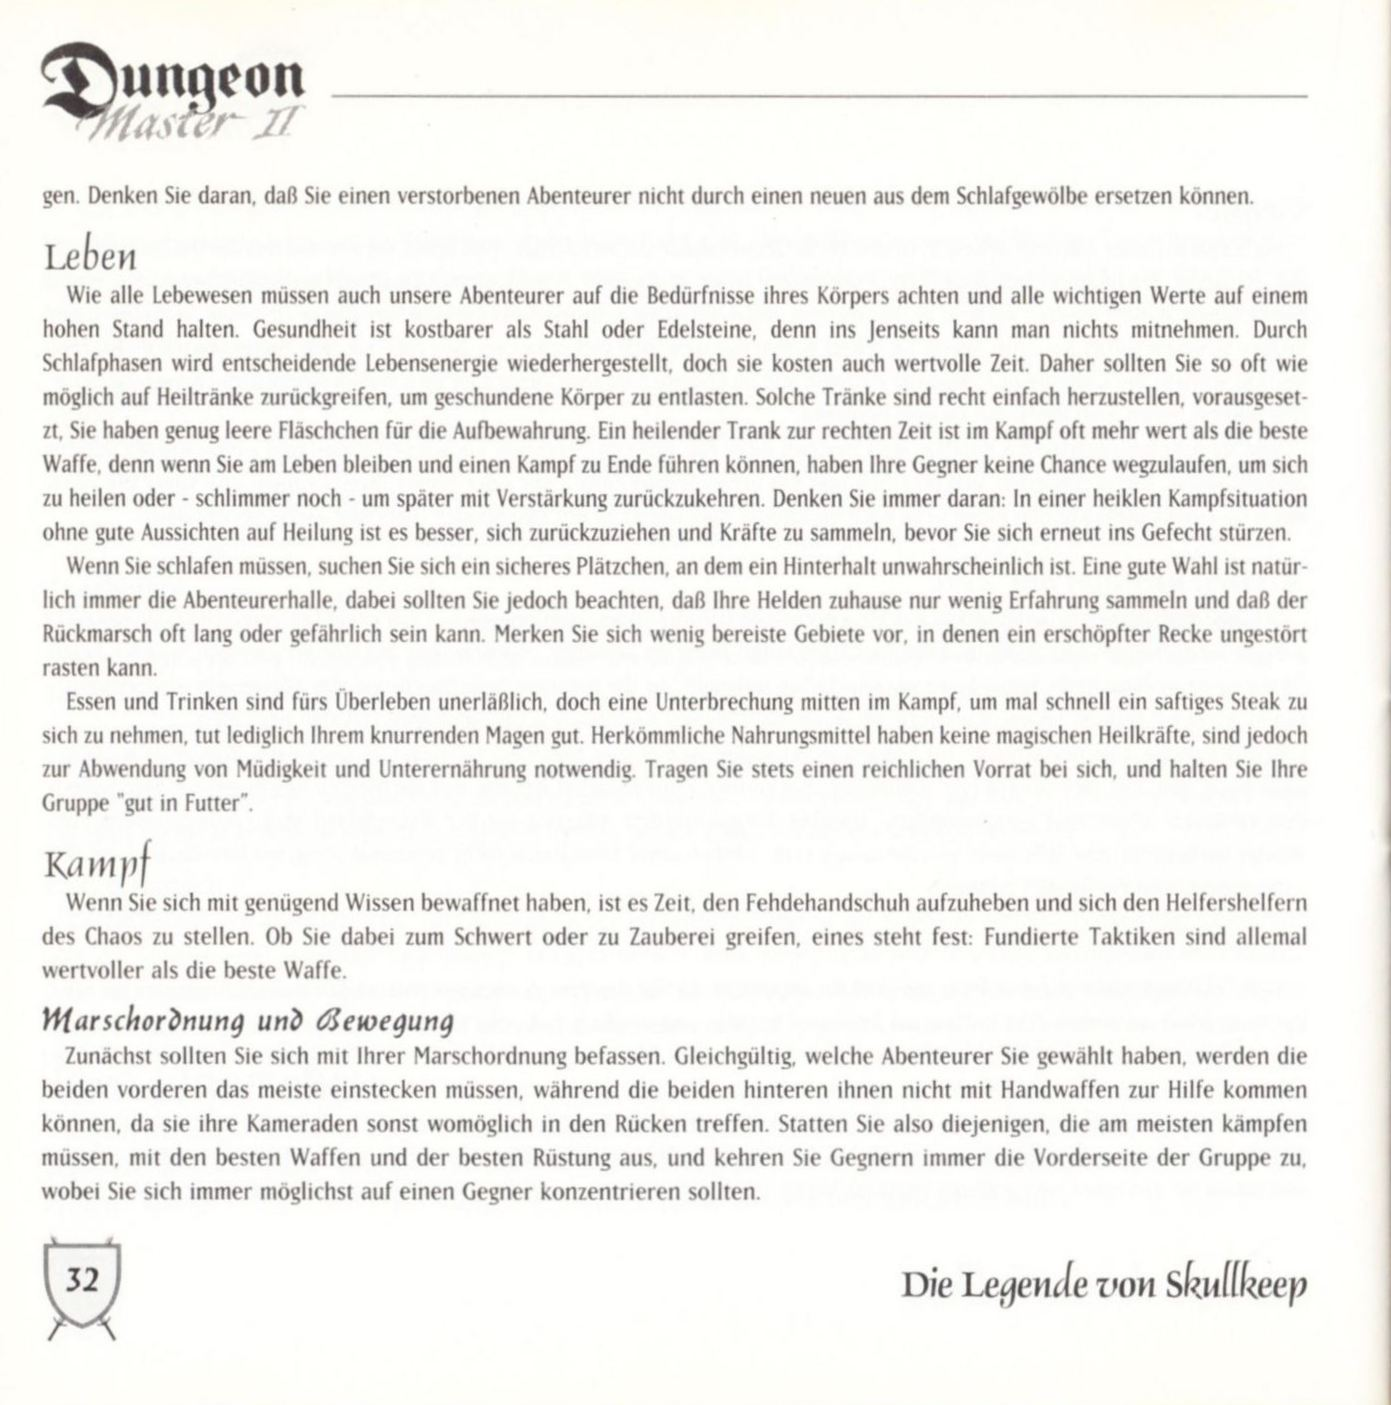 Game - Dungeon Master II - DE - PC - Blackmarket With Booklet - Booklet - Page 034 - Scan